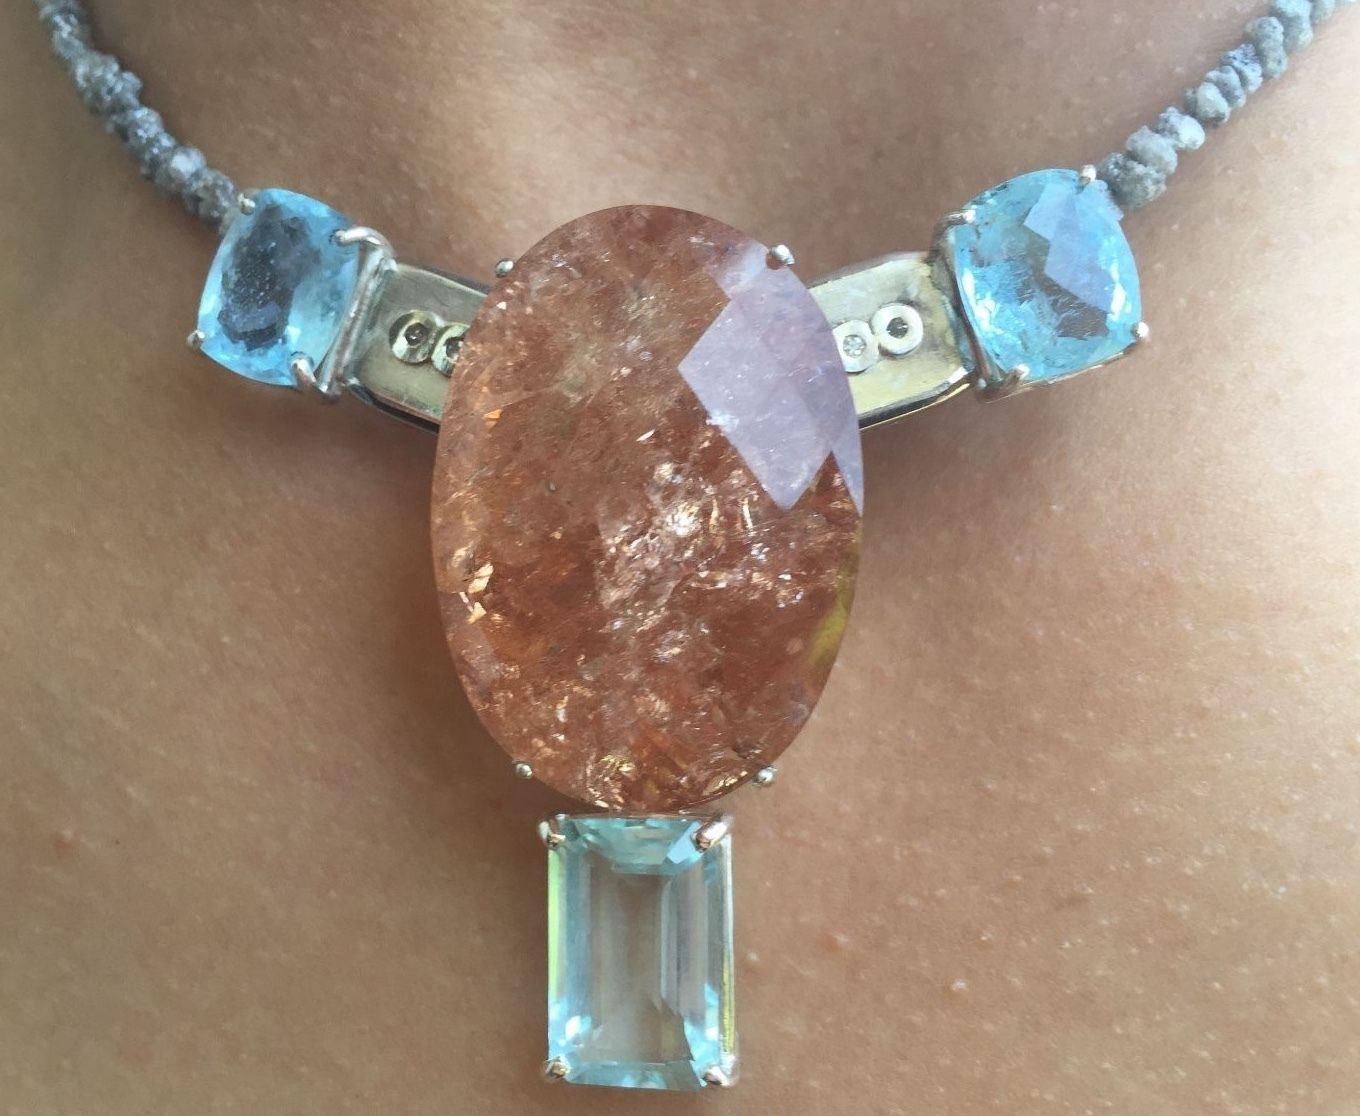 New 142.62ct aquamarine, Morganite, 33ct gray diamond Platinum 14k gold necklace